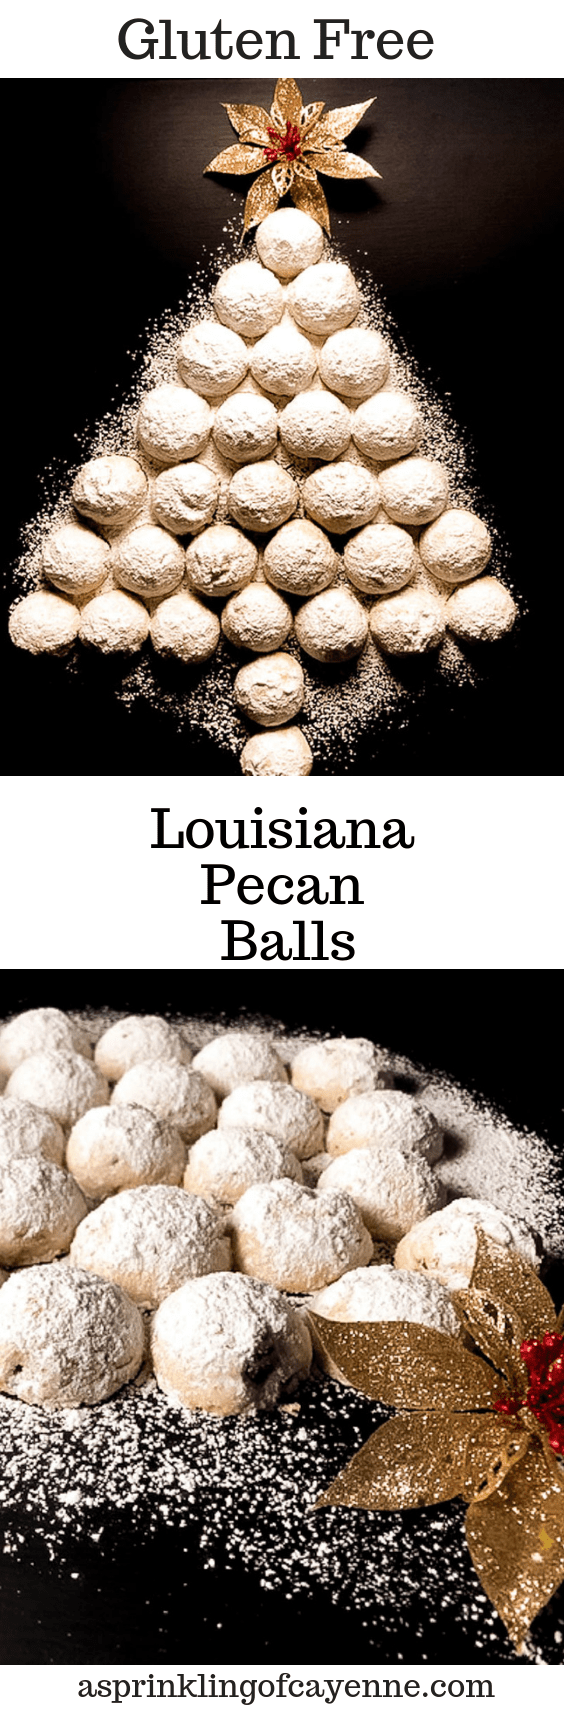 5 LouisianaPecan-Balls